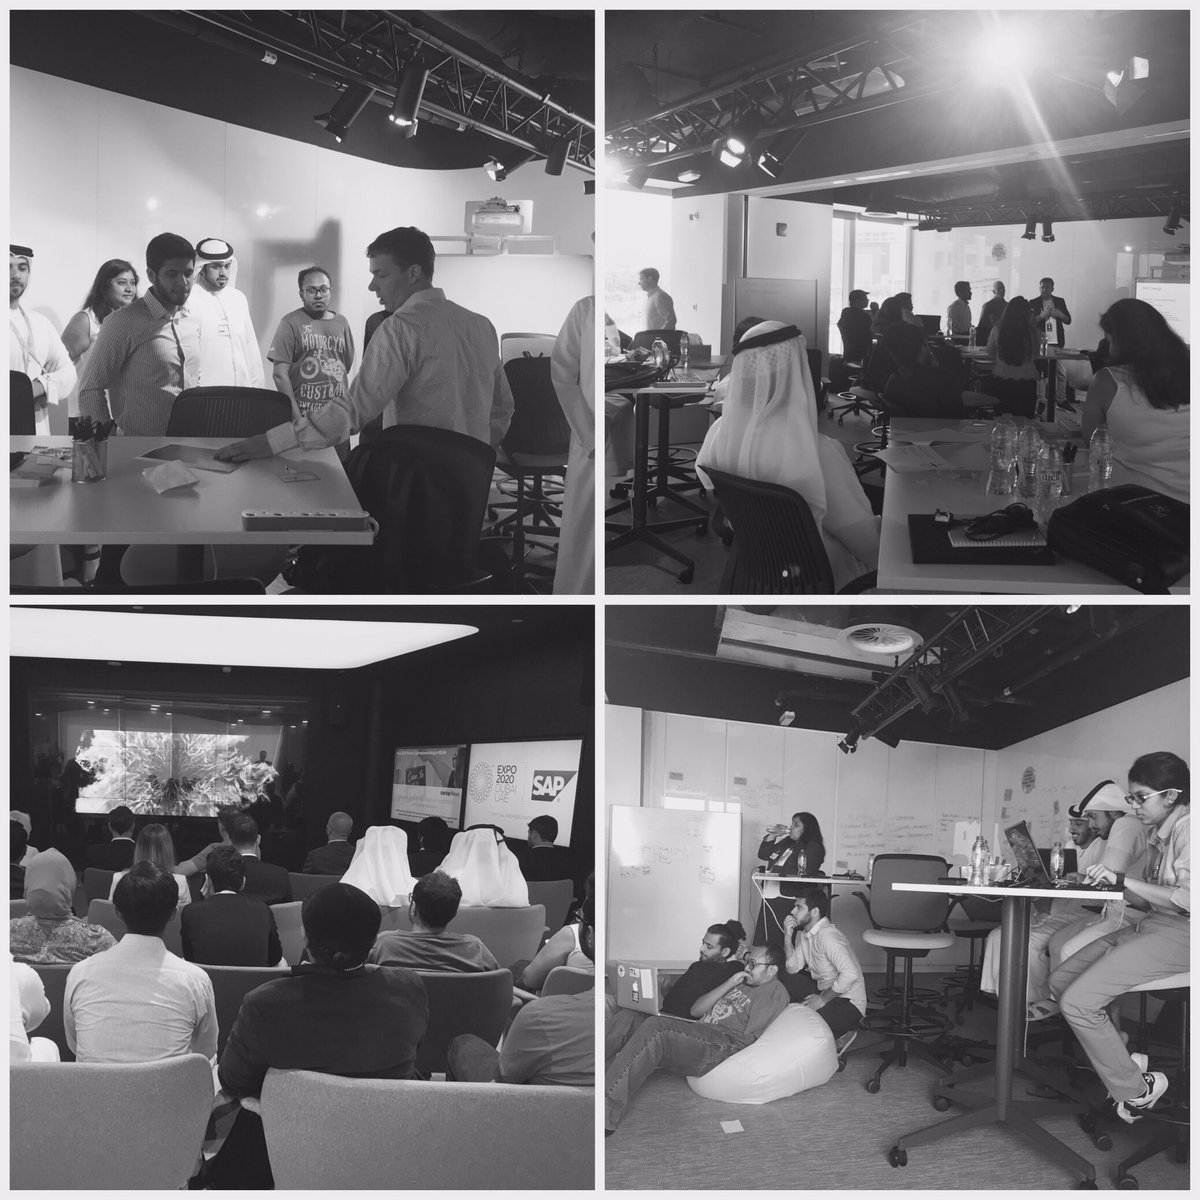 Good luck &amp; happy hacking 2 all participating teams @sap @expo2020dubai hackathon Disruptive apps are in d-making #mydubai #innovate #design<br>http://pic.twitter.com/WvwxNQZu8k